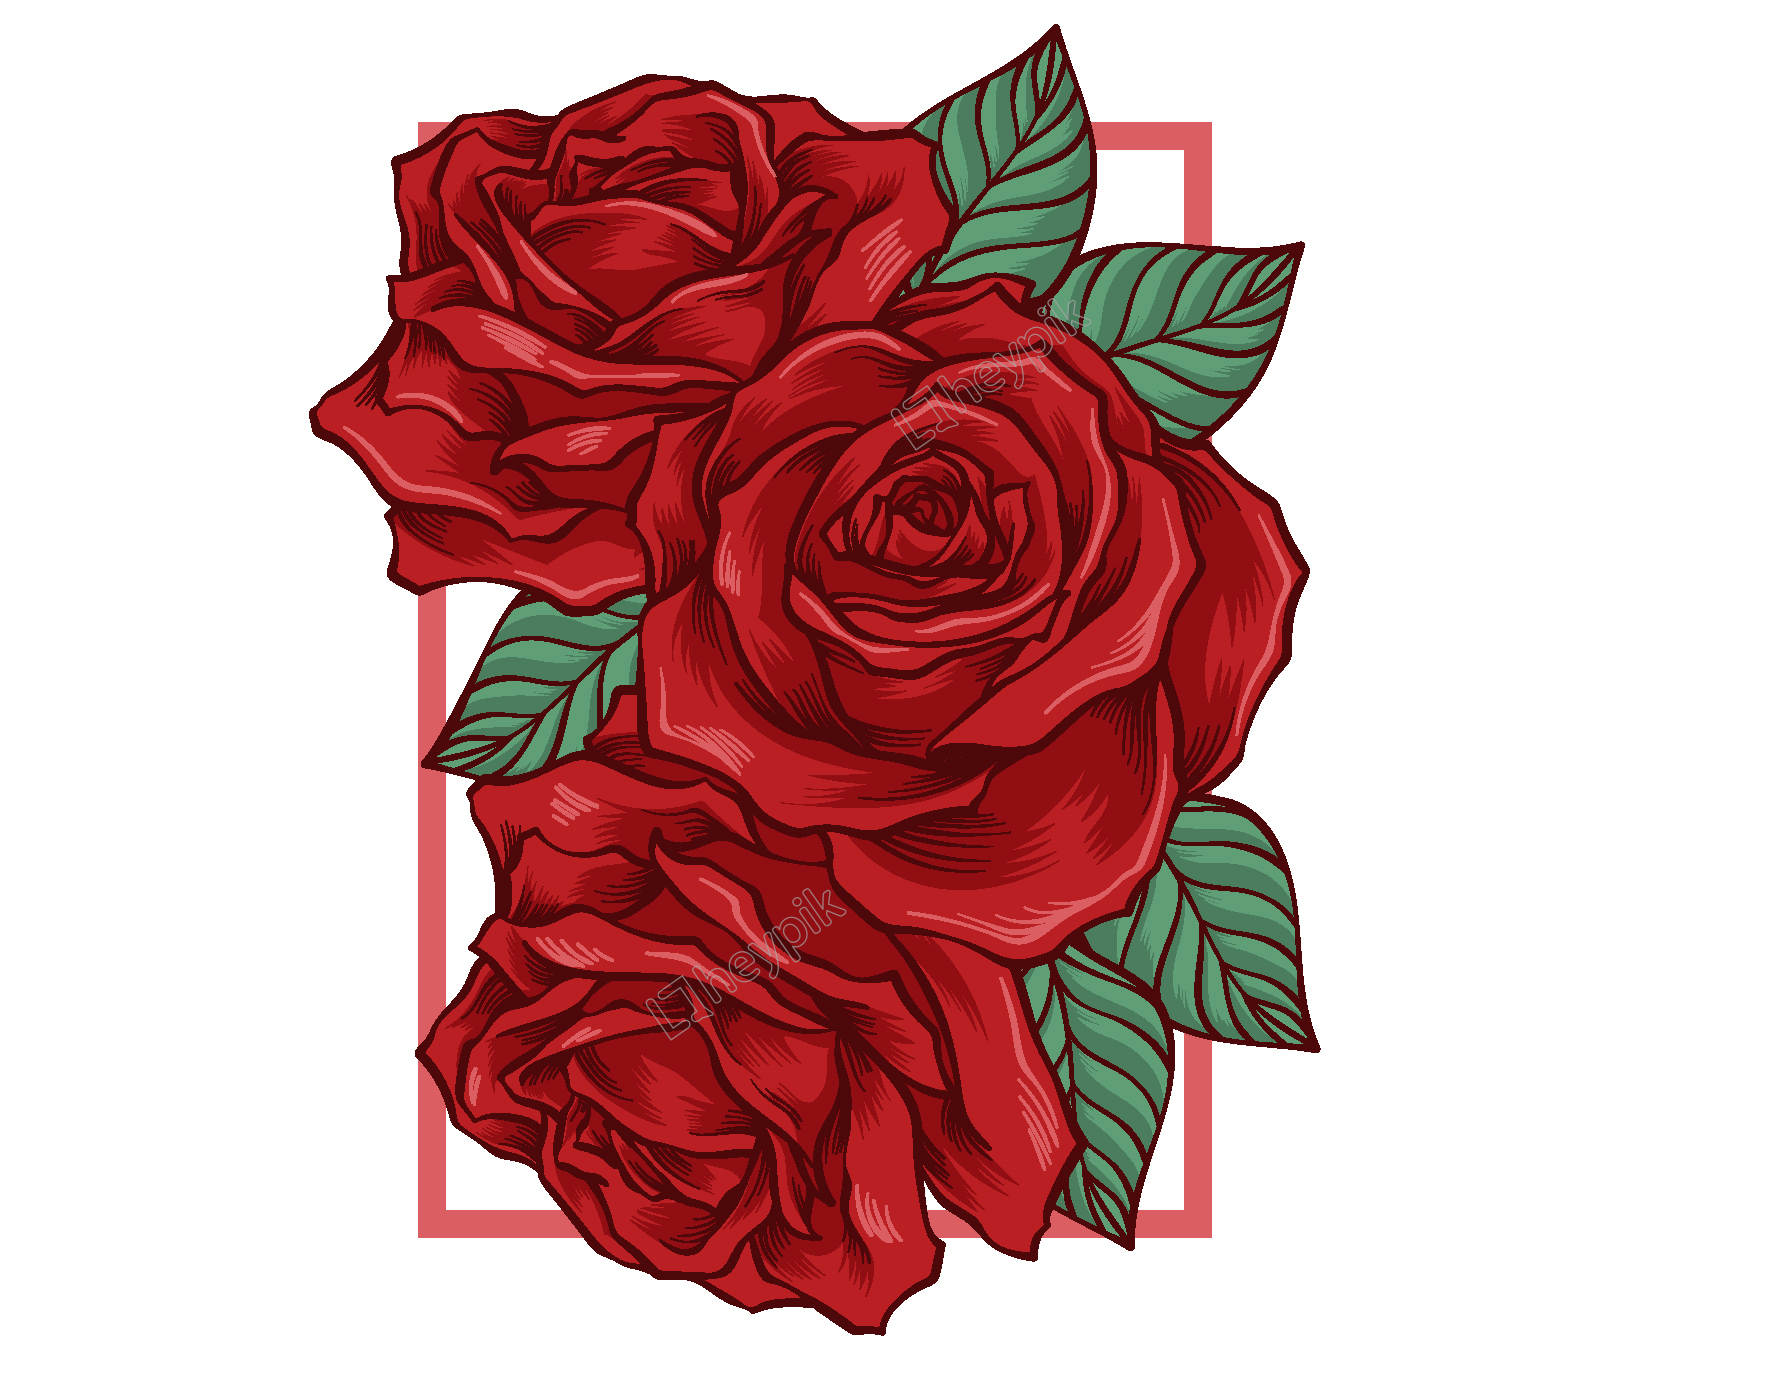 Rose Vector Png - Rose Vector Png (75+ images)